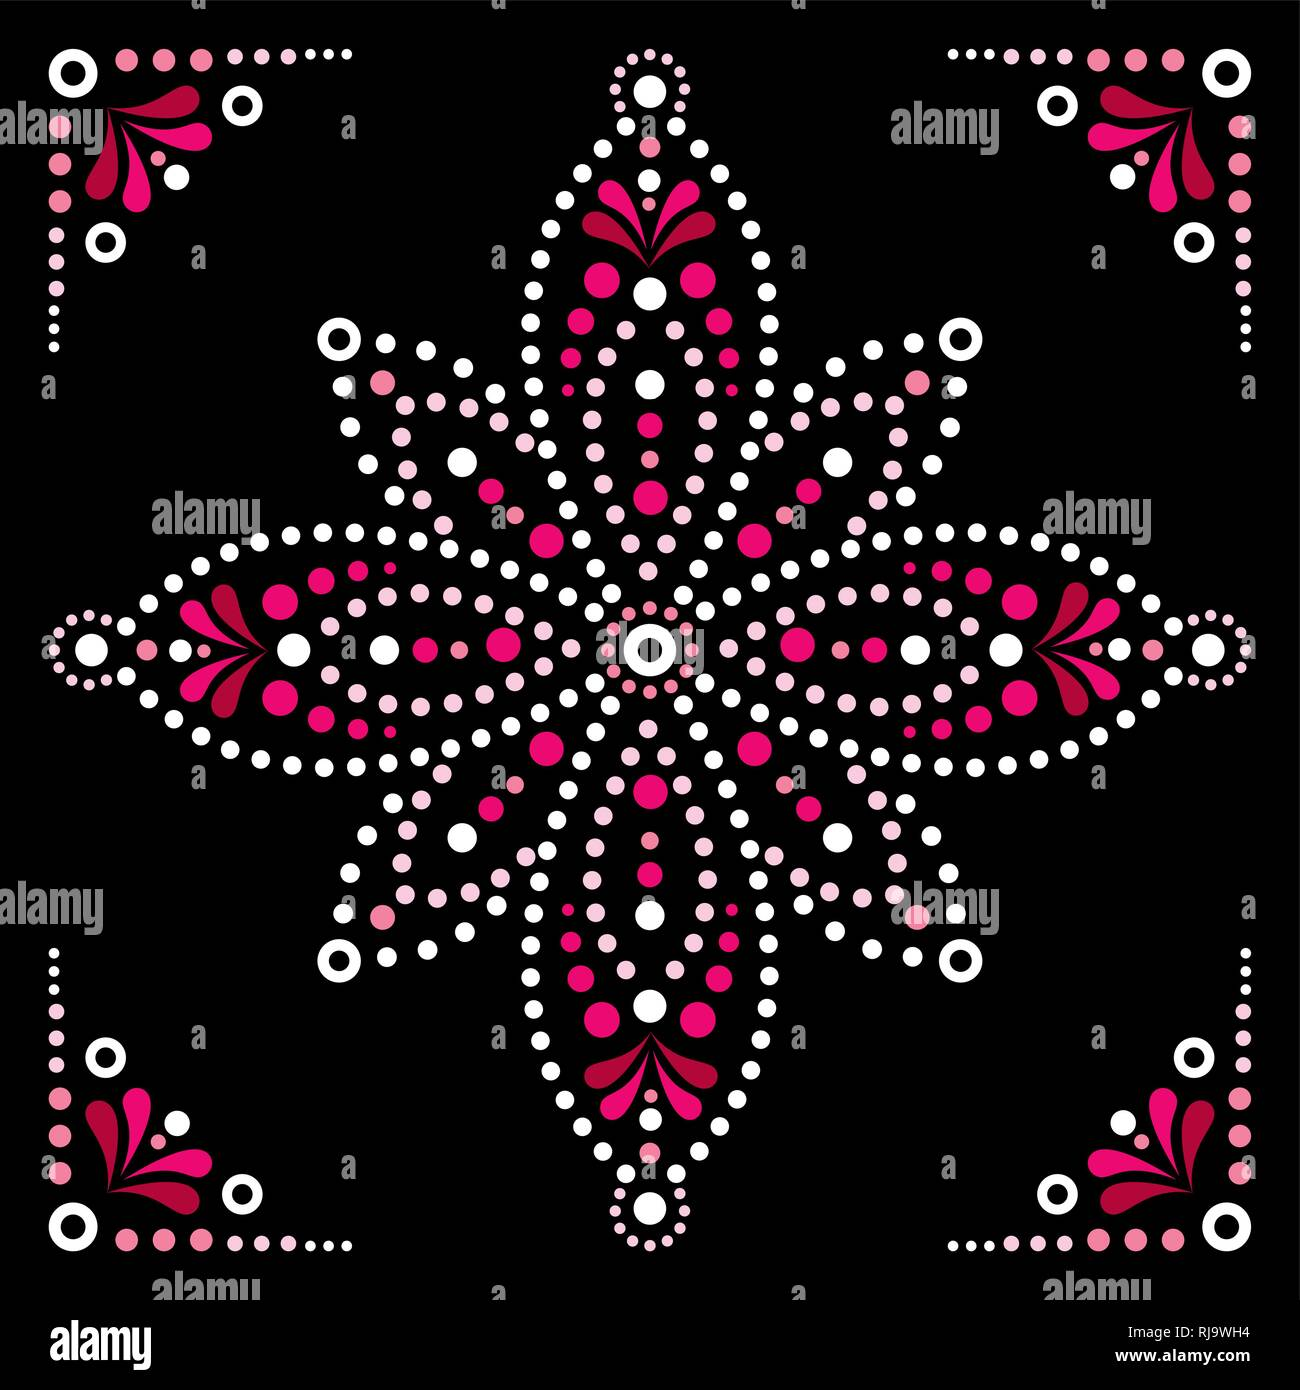 Dot Art Vector Flower Traditional Aboriginal Dot Painting Design